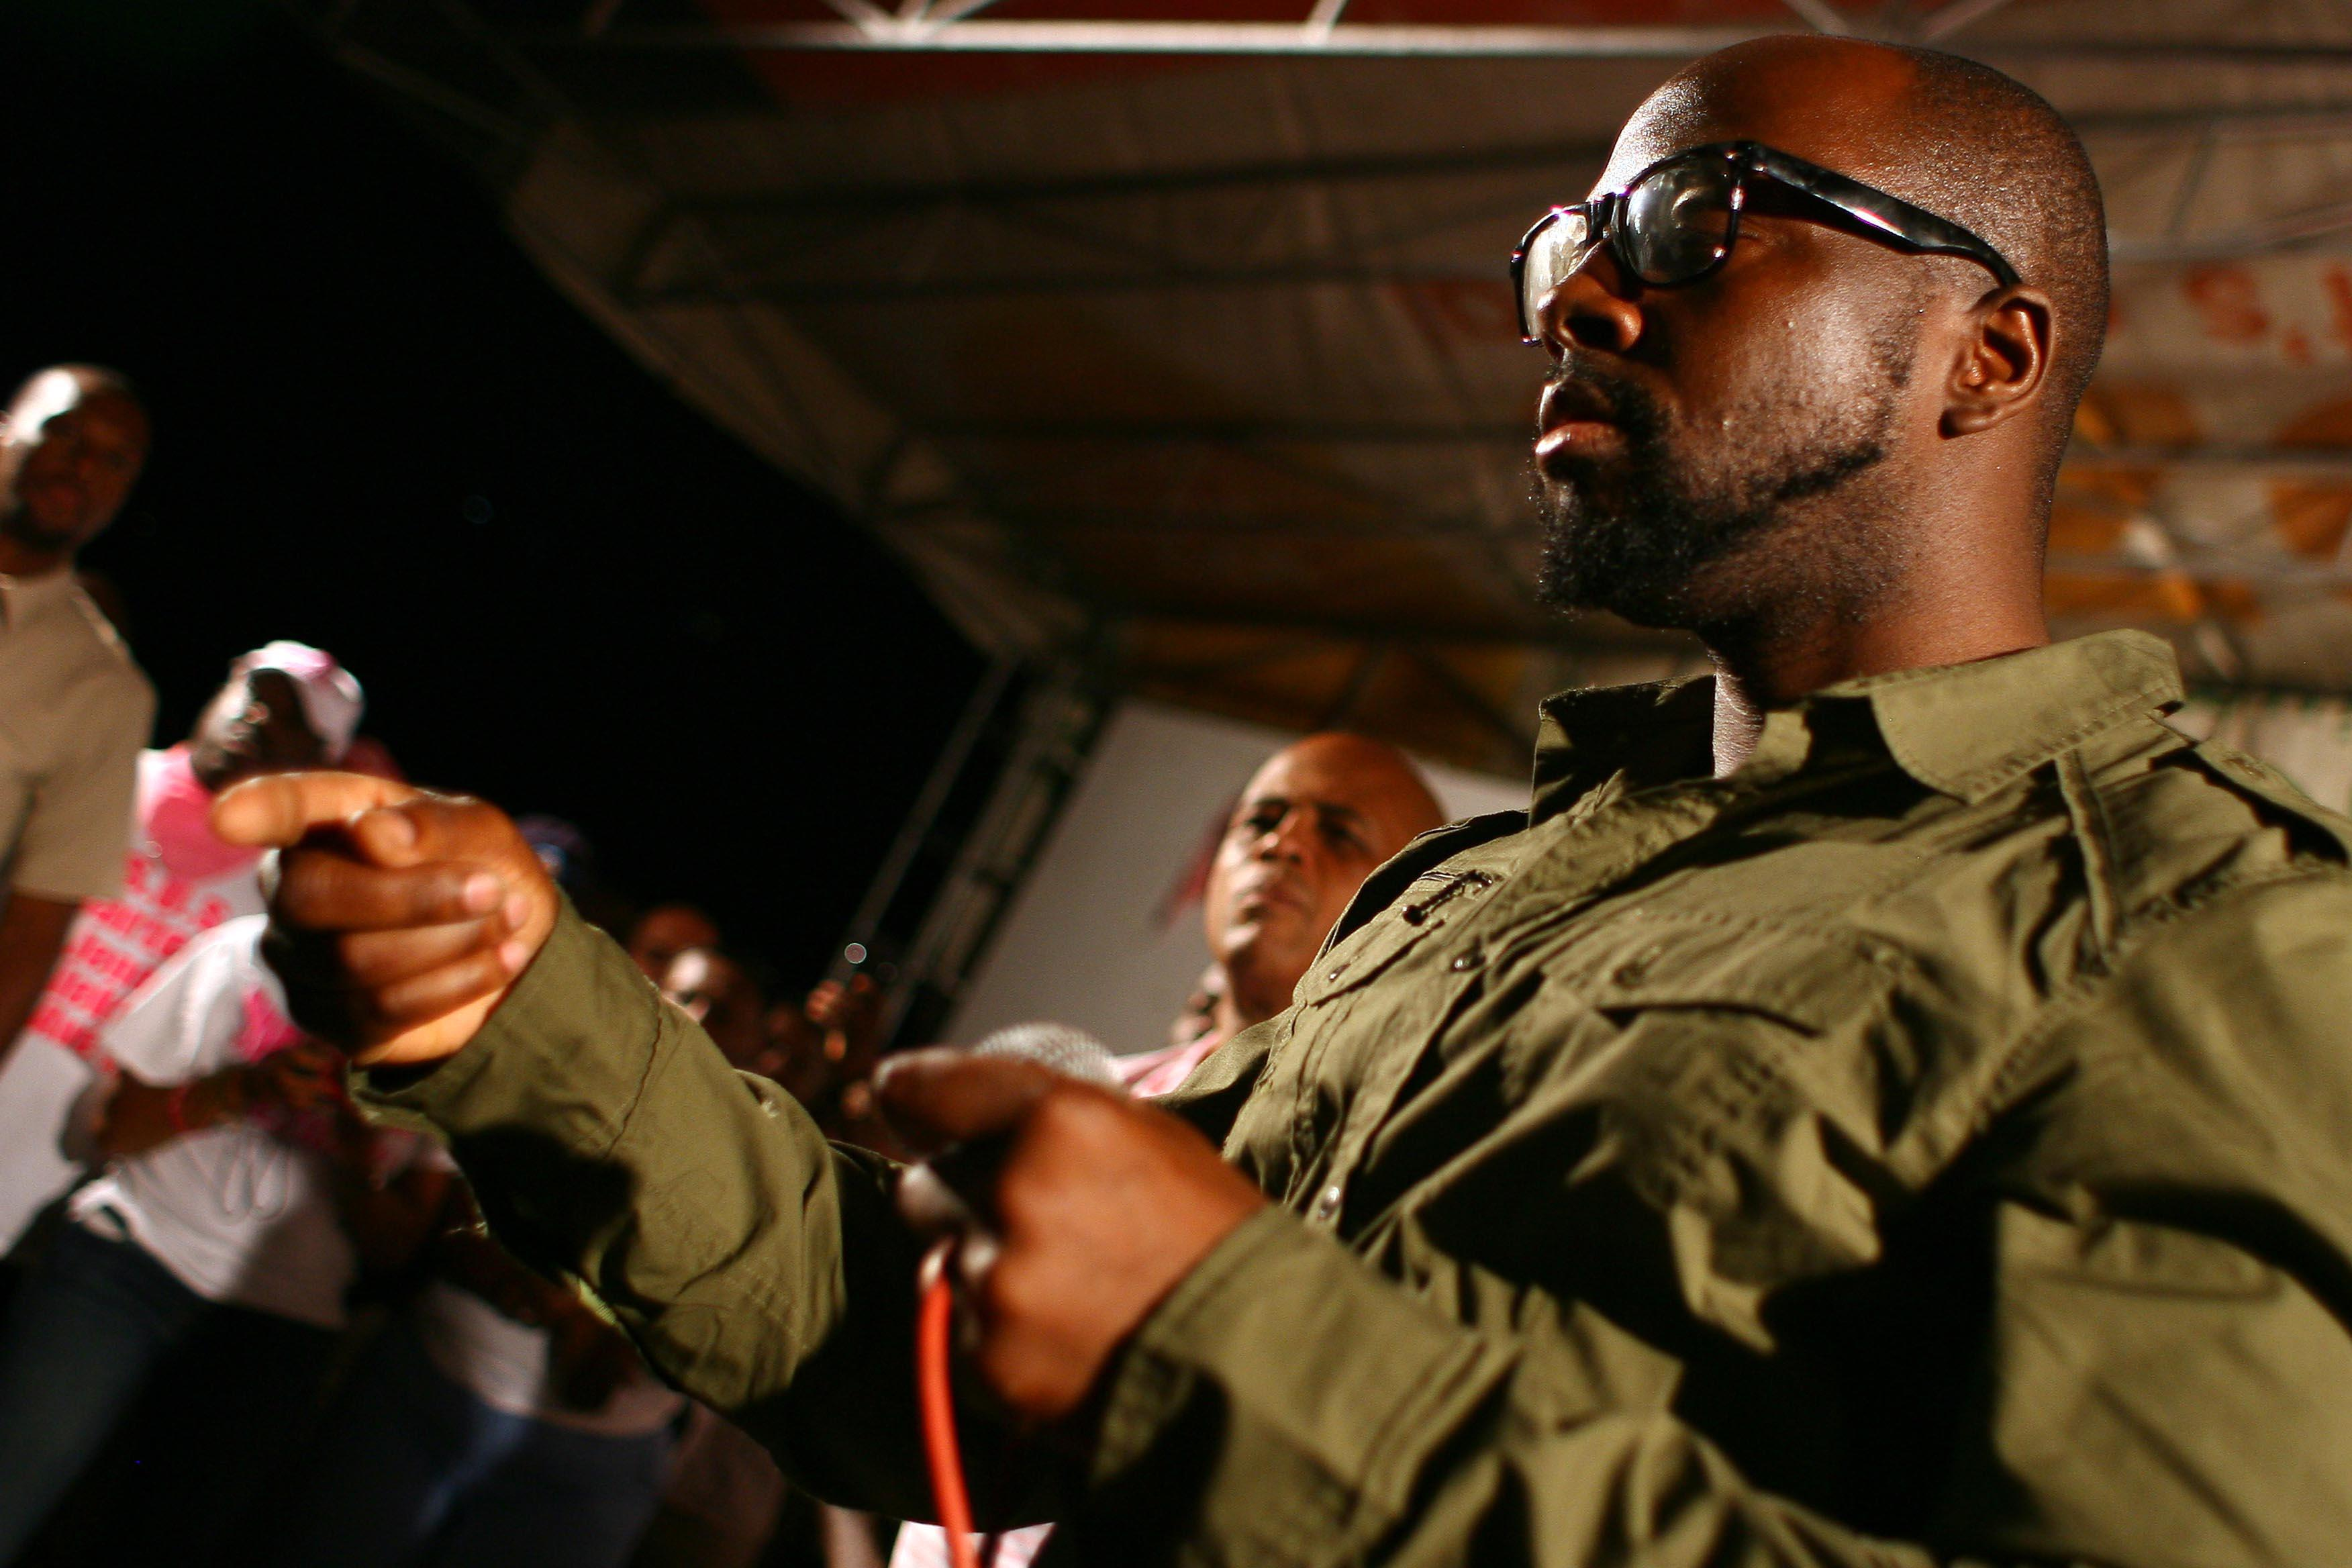 Singer Wyclef Jean attends a rally in s